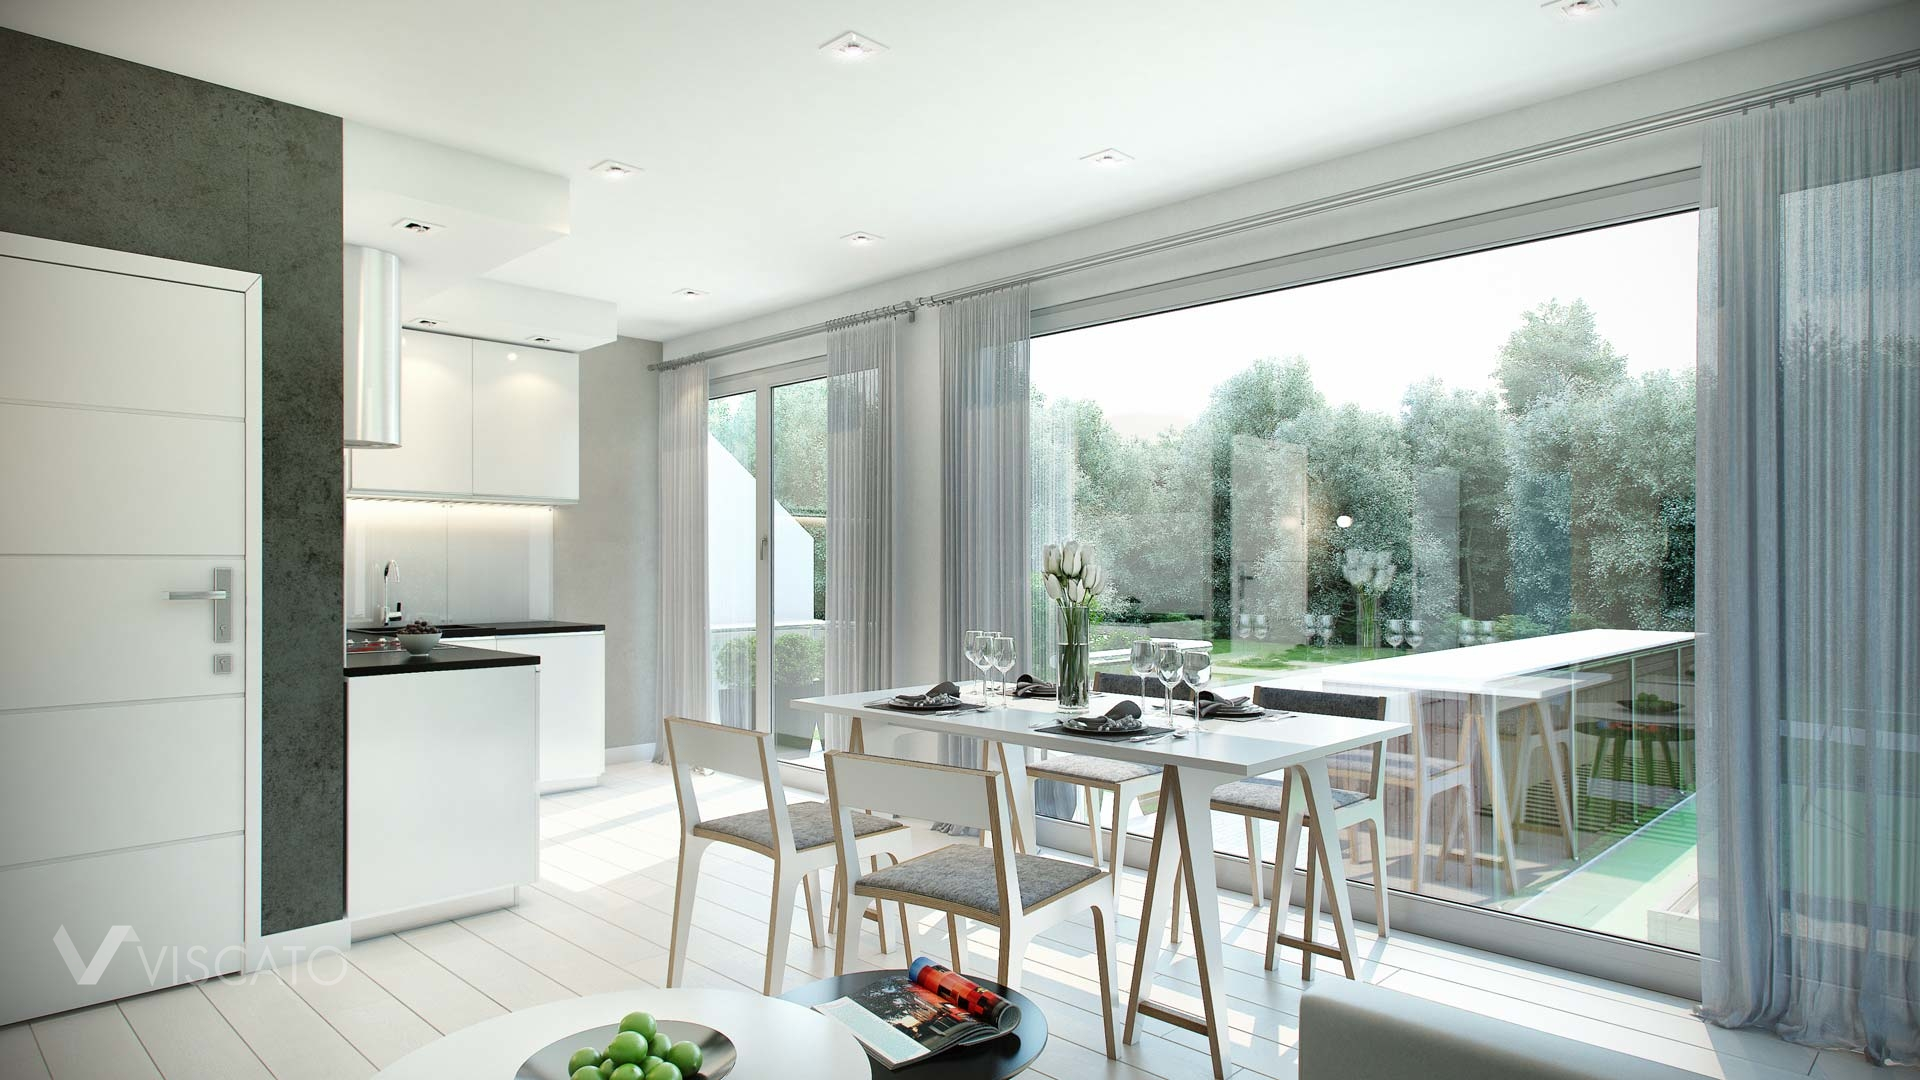 Interior 3d Visualization of modern scandinavian appartment- kitchen and table with chairs